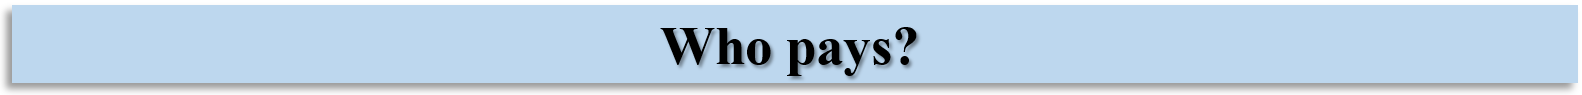 Who pays? banner